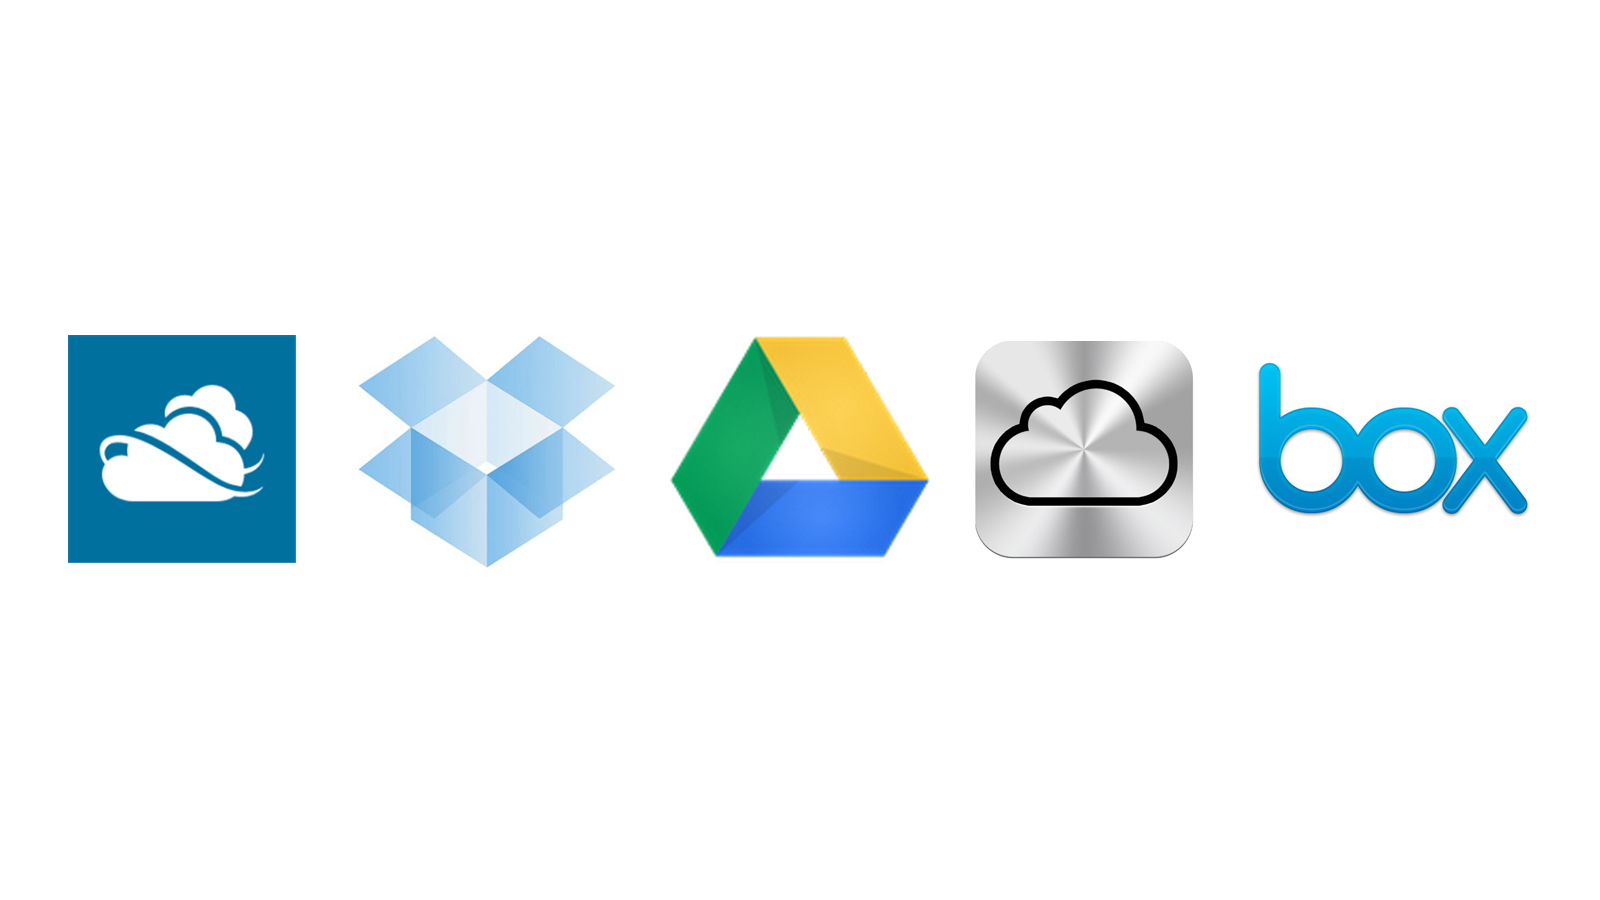 google drive, icloud, dropbox and more compared